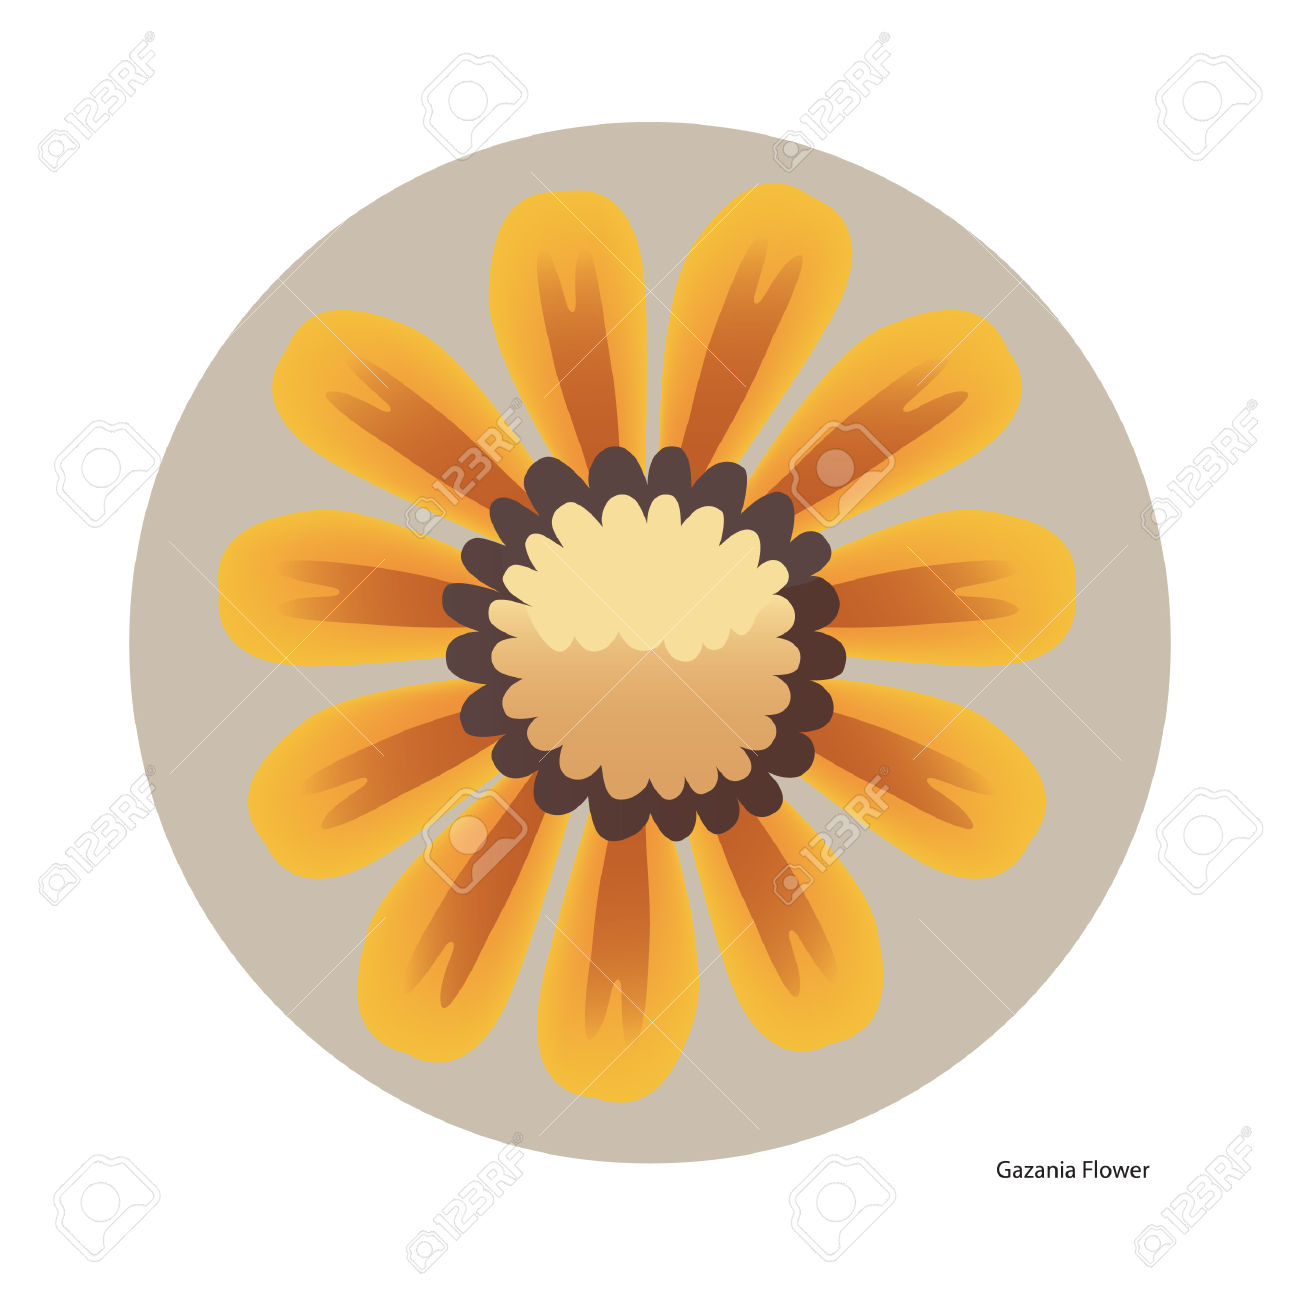 Gazania Flower Royalty Free Cliparts, Vectors, And Stock.